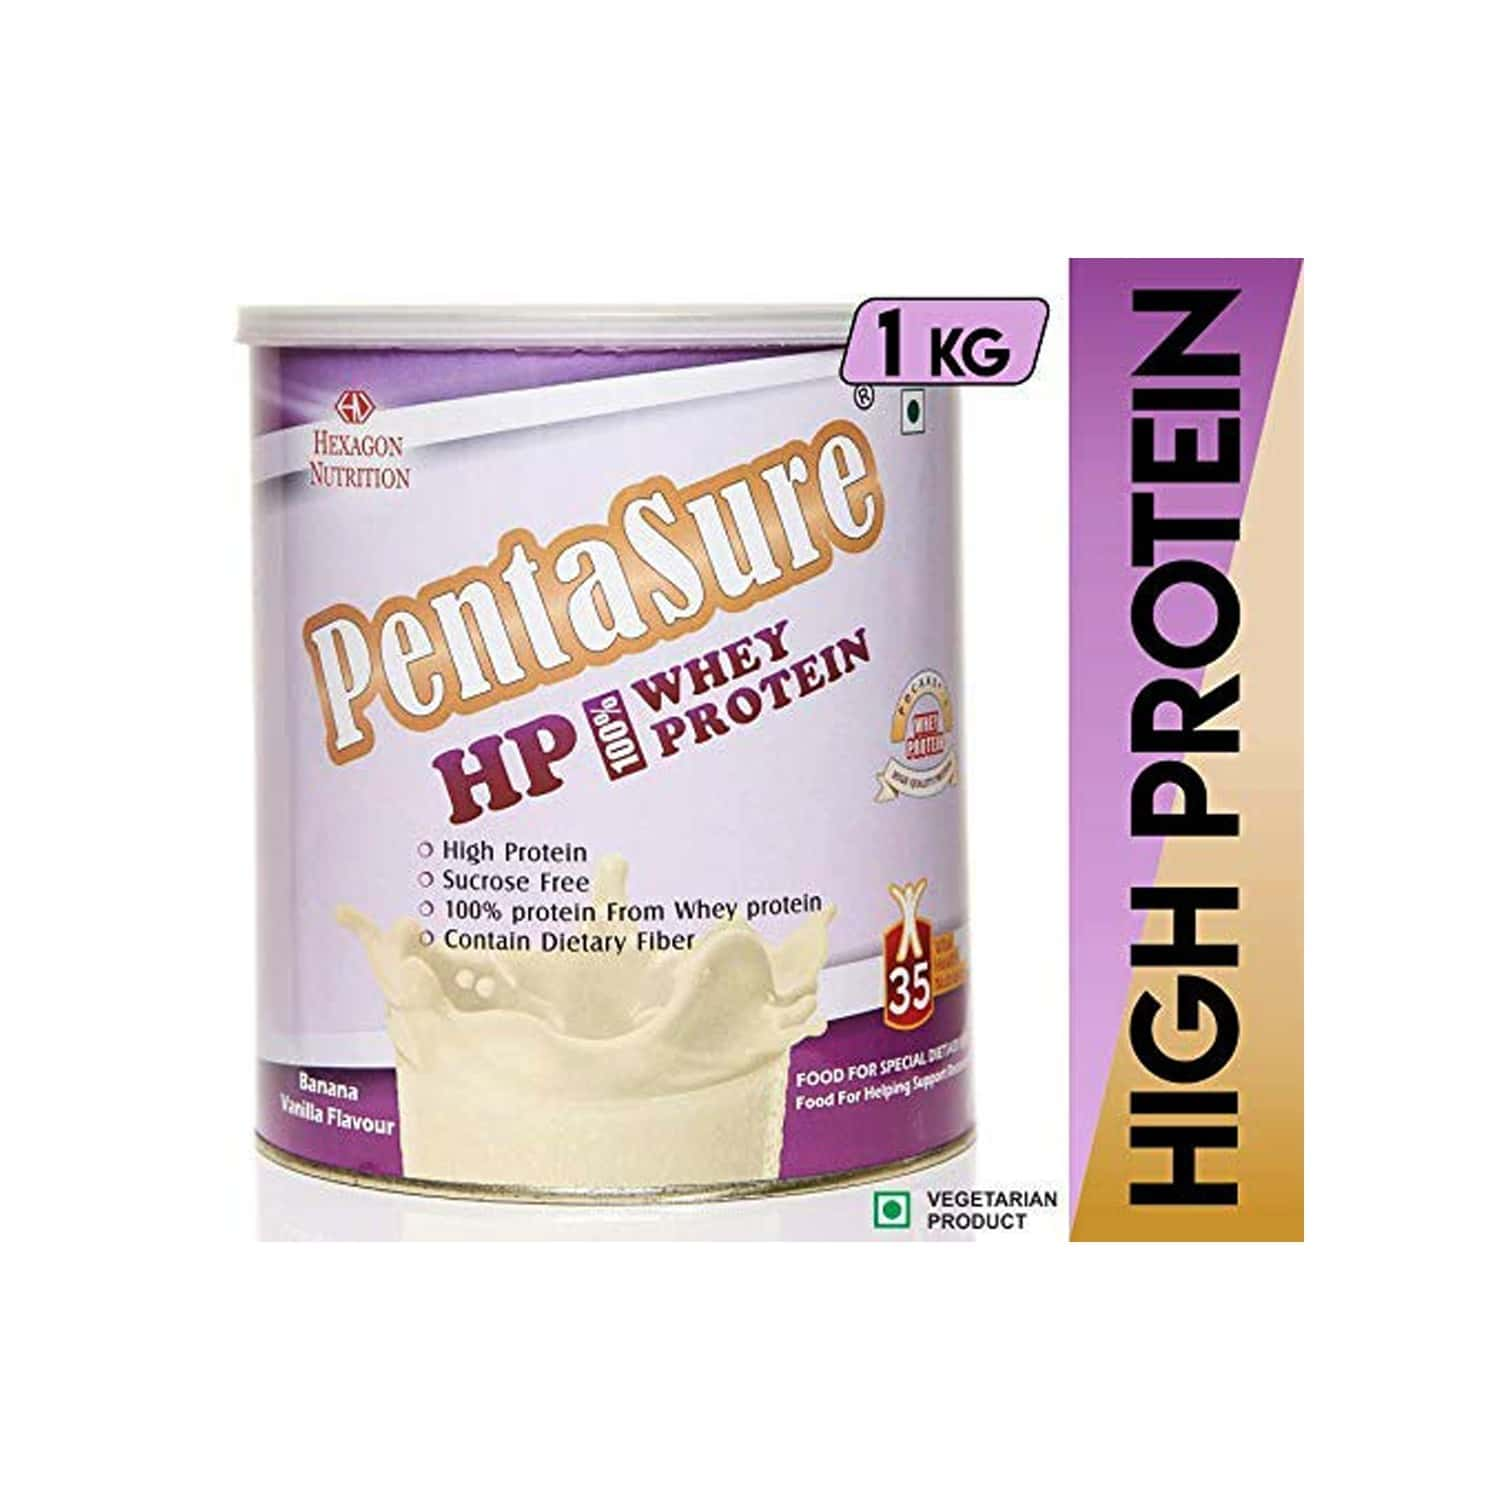 Pentasure Hp Banana Vanilla Whey Protein Tin Of 1 Kg